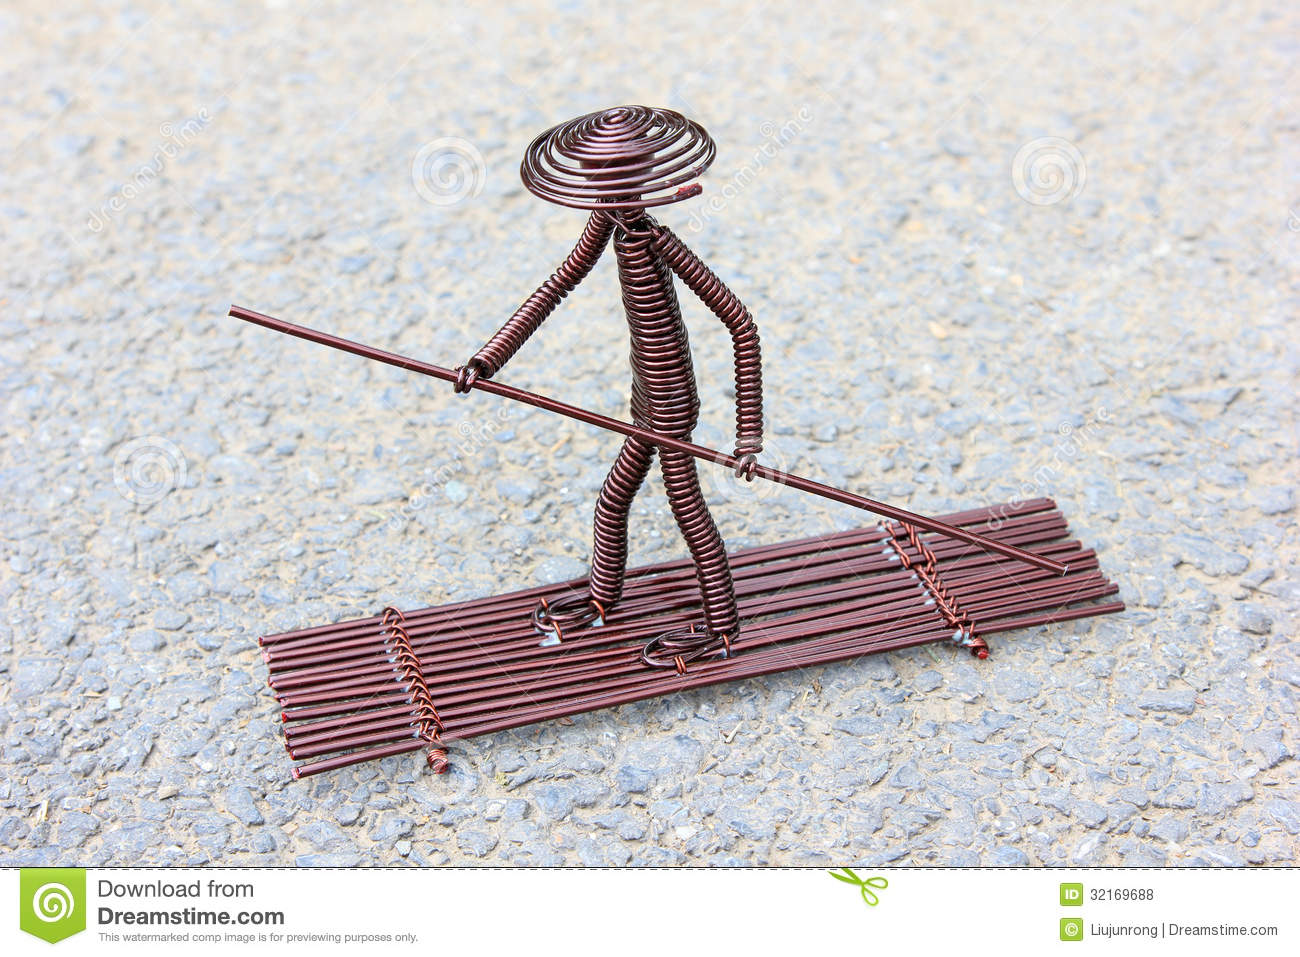 Toy Crafts Boatman Made Of Copper Wire Stock Photo - Image of ...